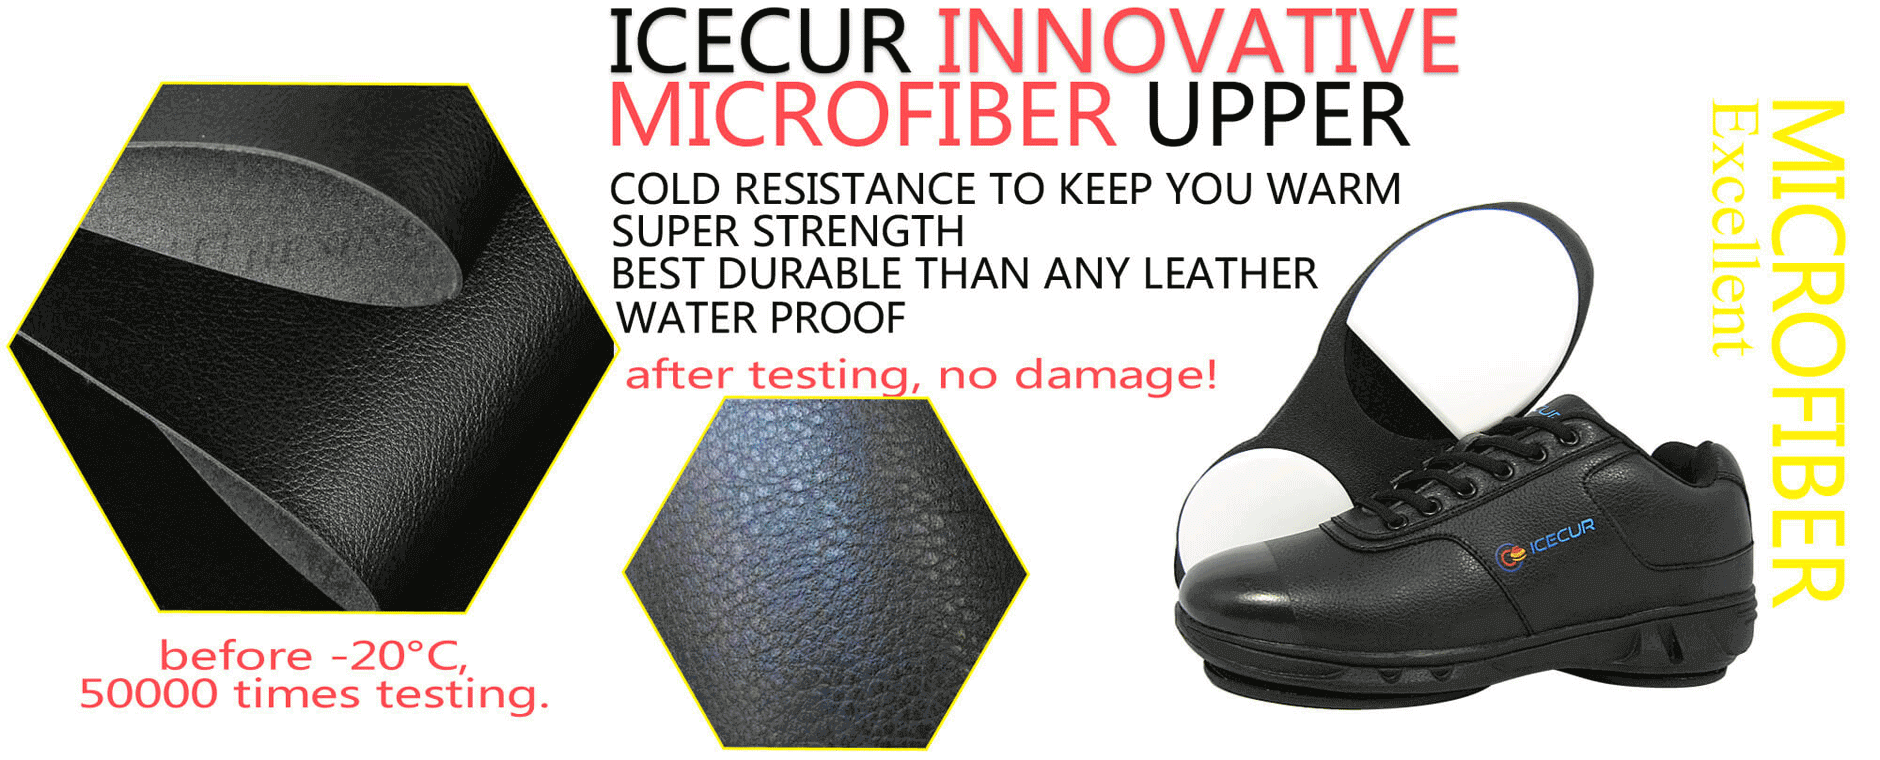 Icecur Curling Shoes